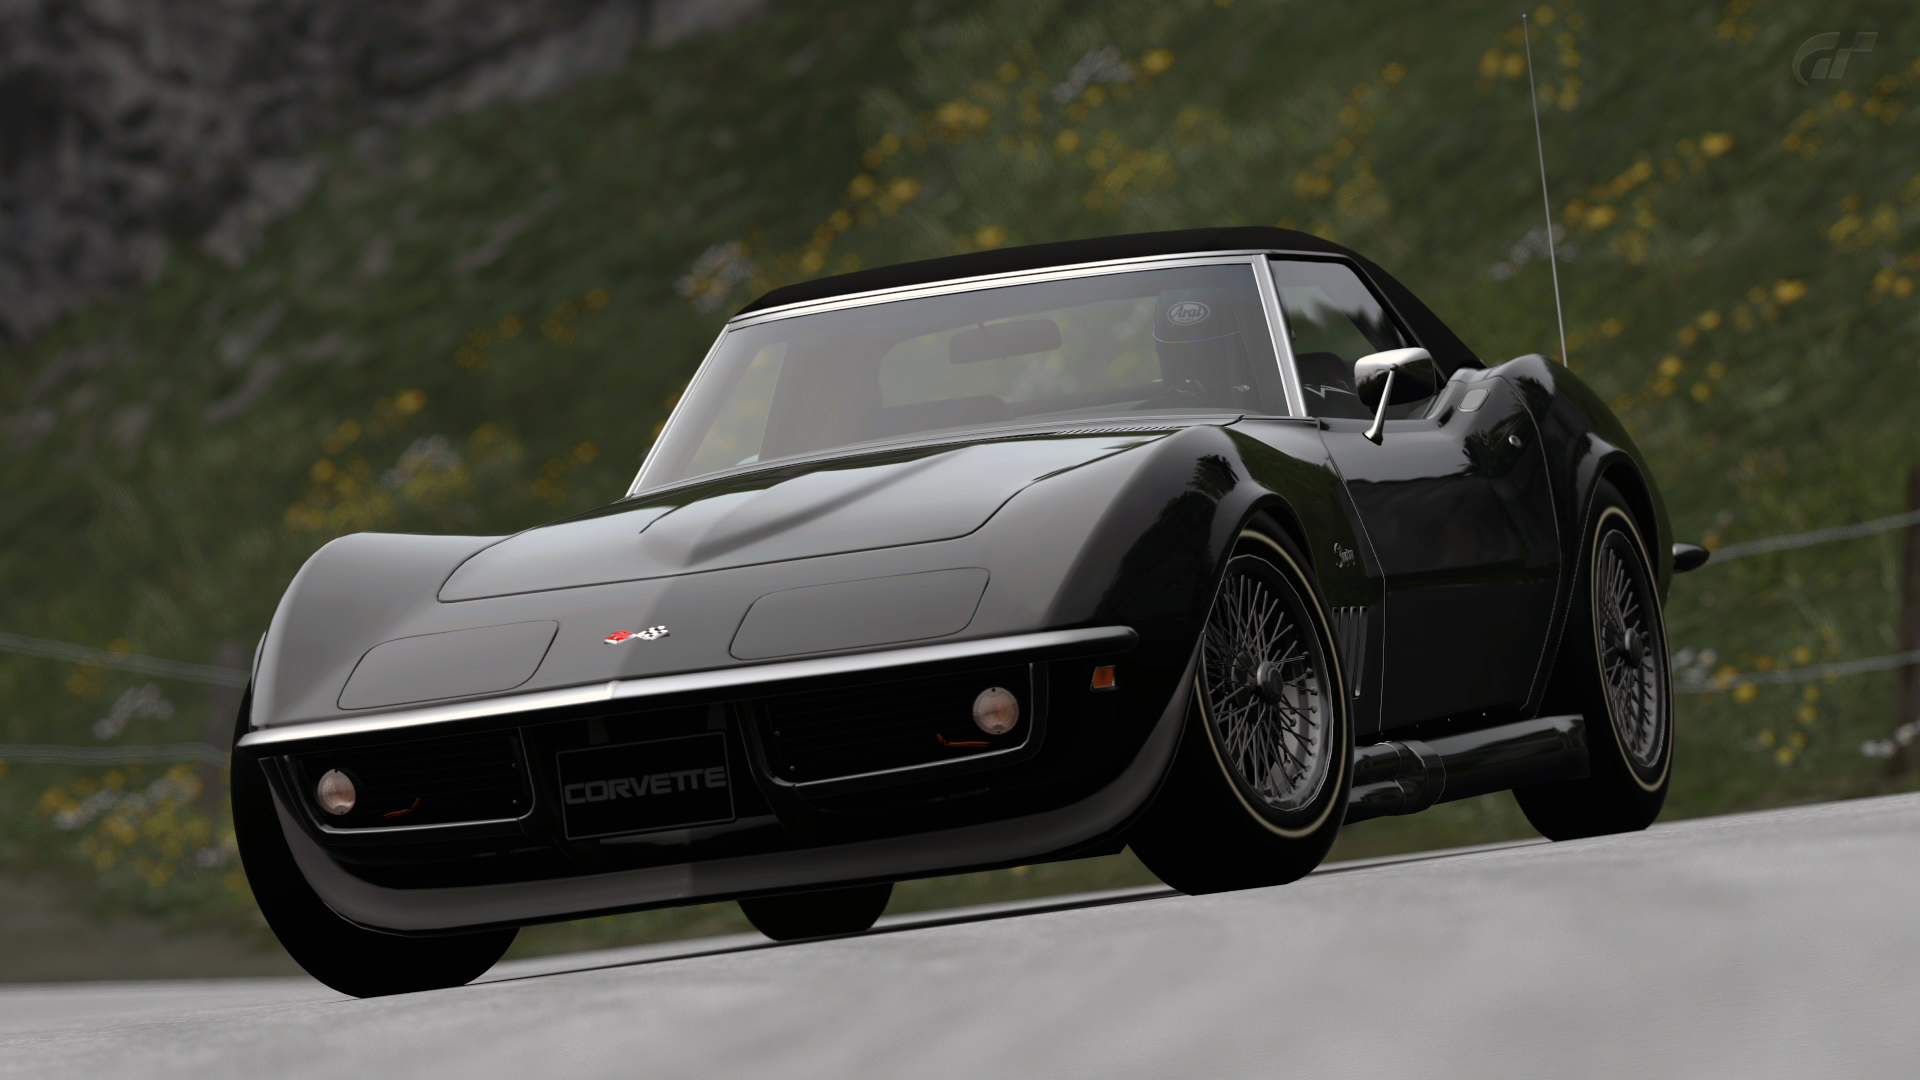 A Diagram Of Corvette Car Download Wiring Diagrams Gt6 1969 Chevy Stingray C3 Convertible By Vertualissimo Rh Deviantart Com Headlight